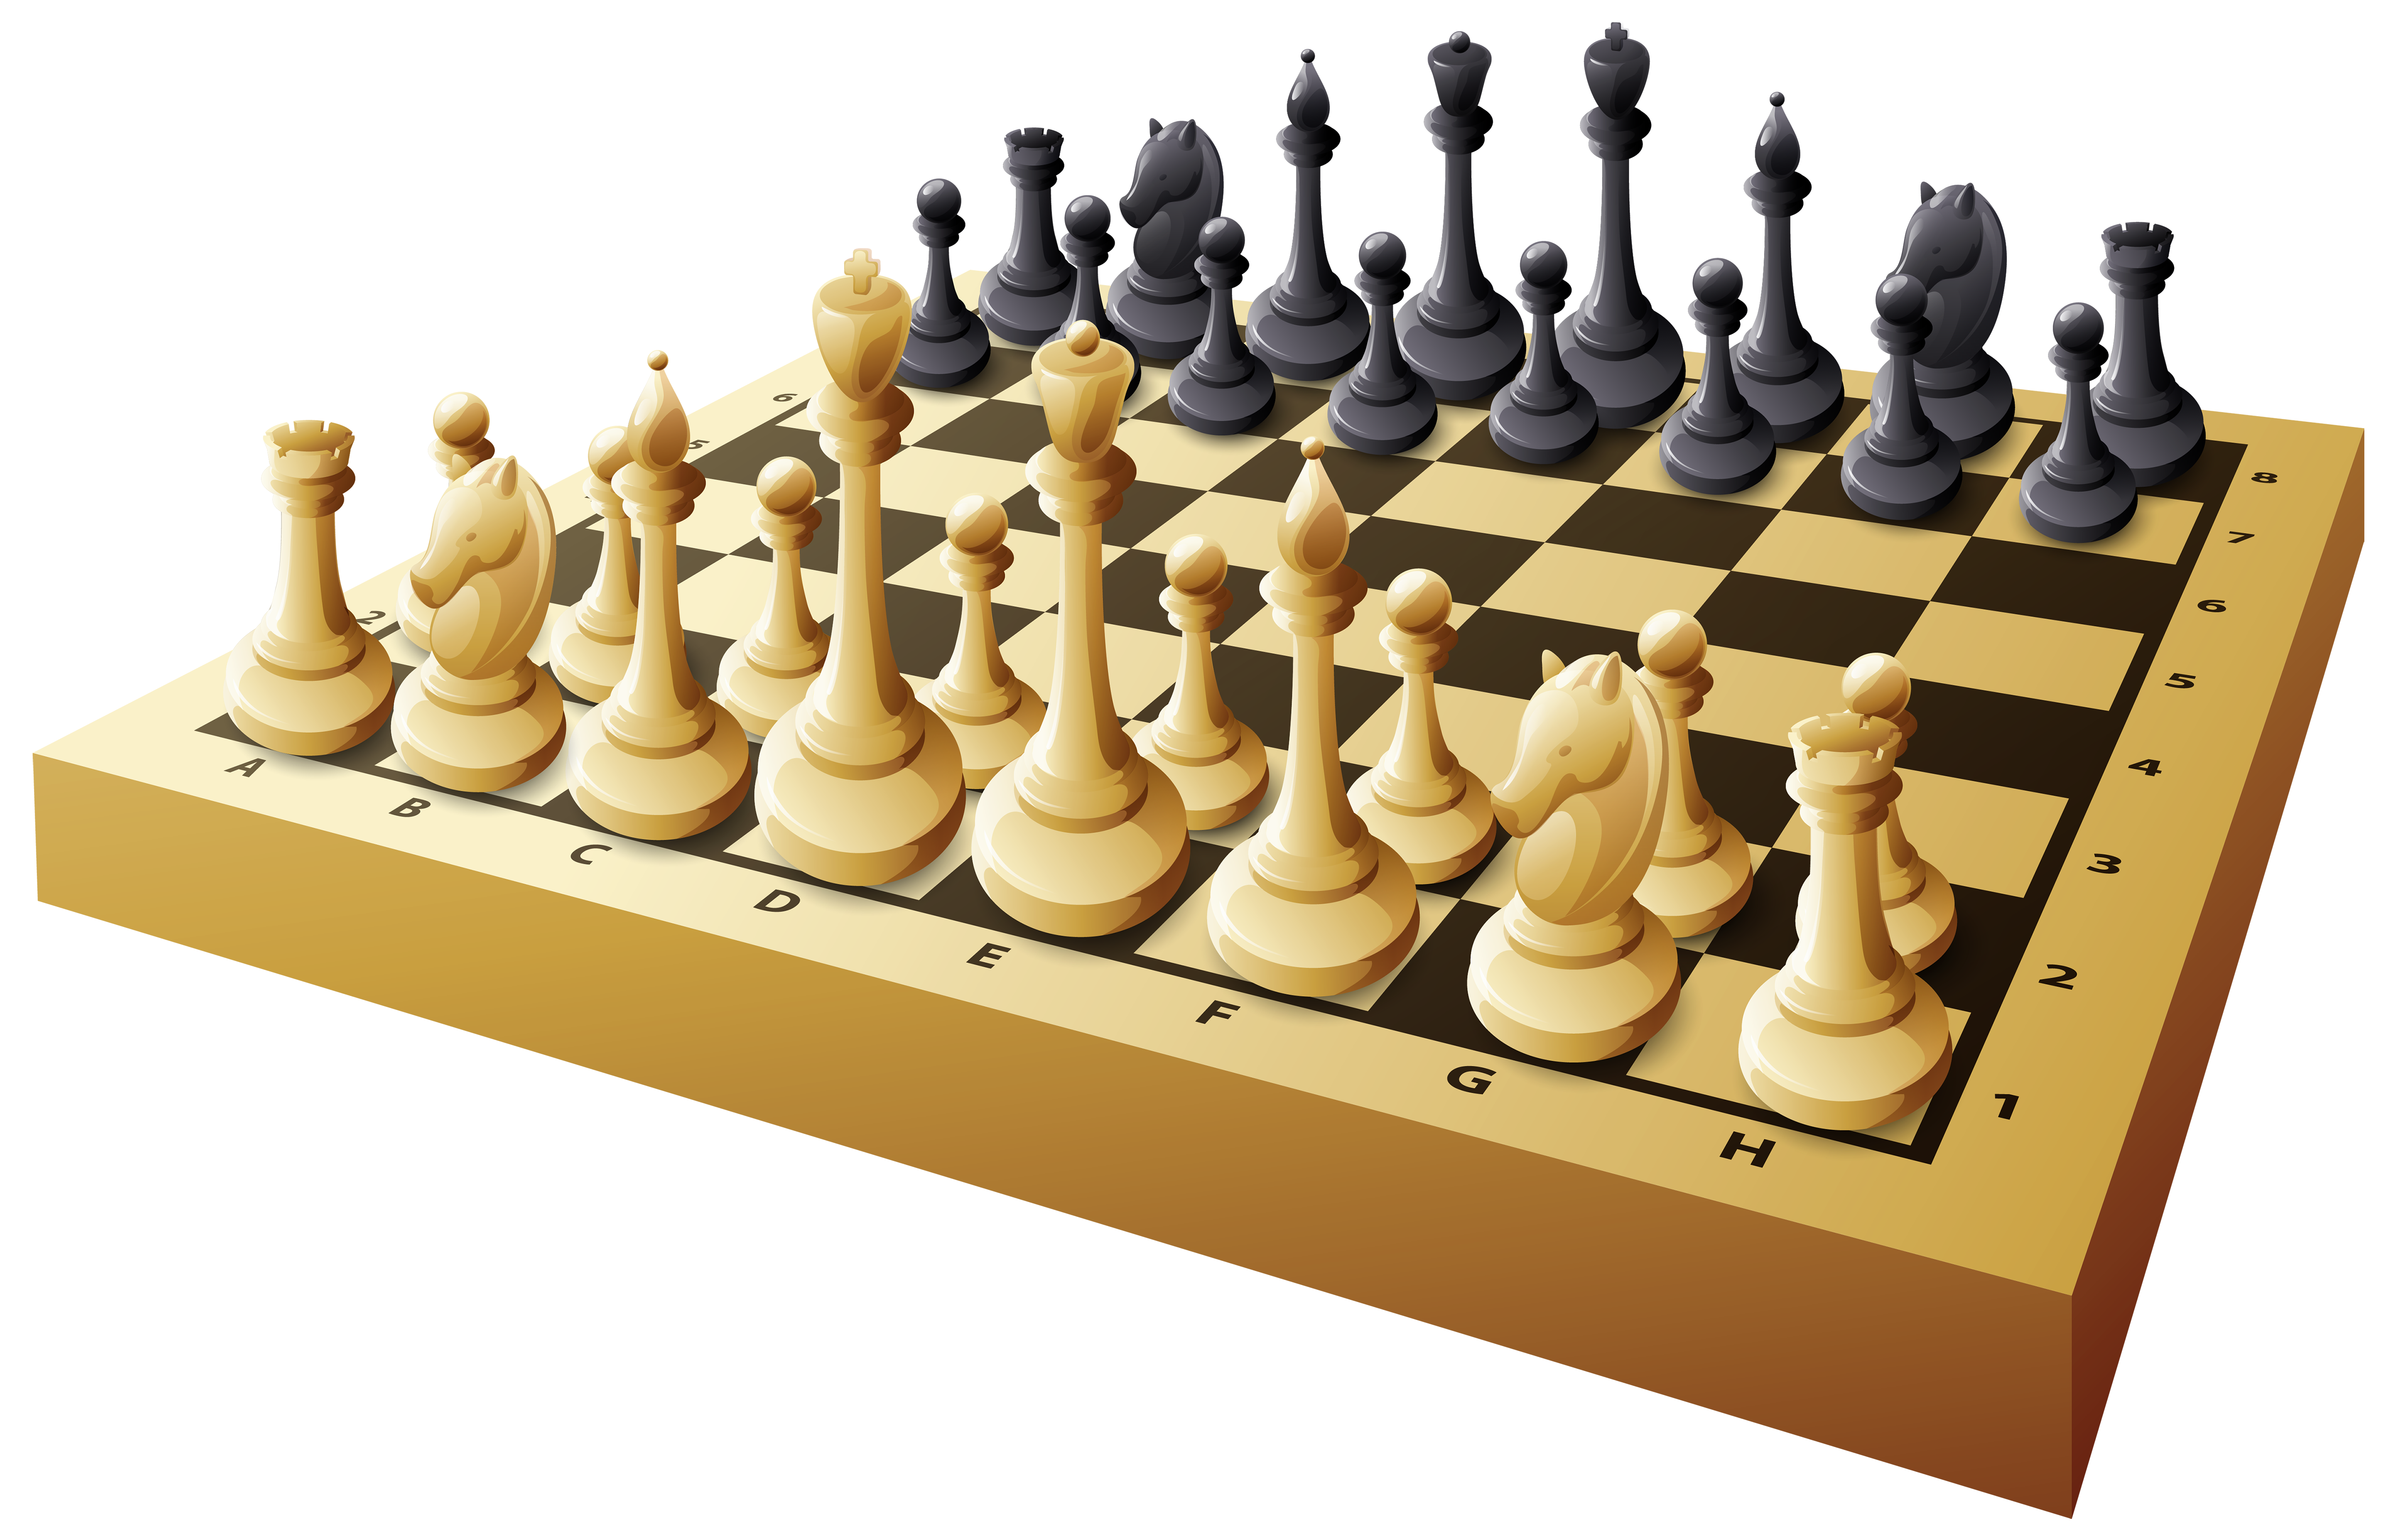 Chessboard png best web. Games clipart portable